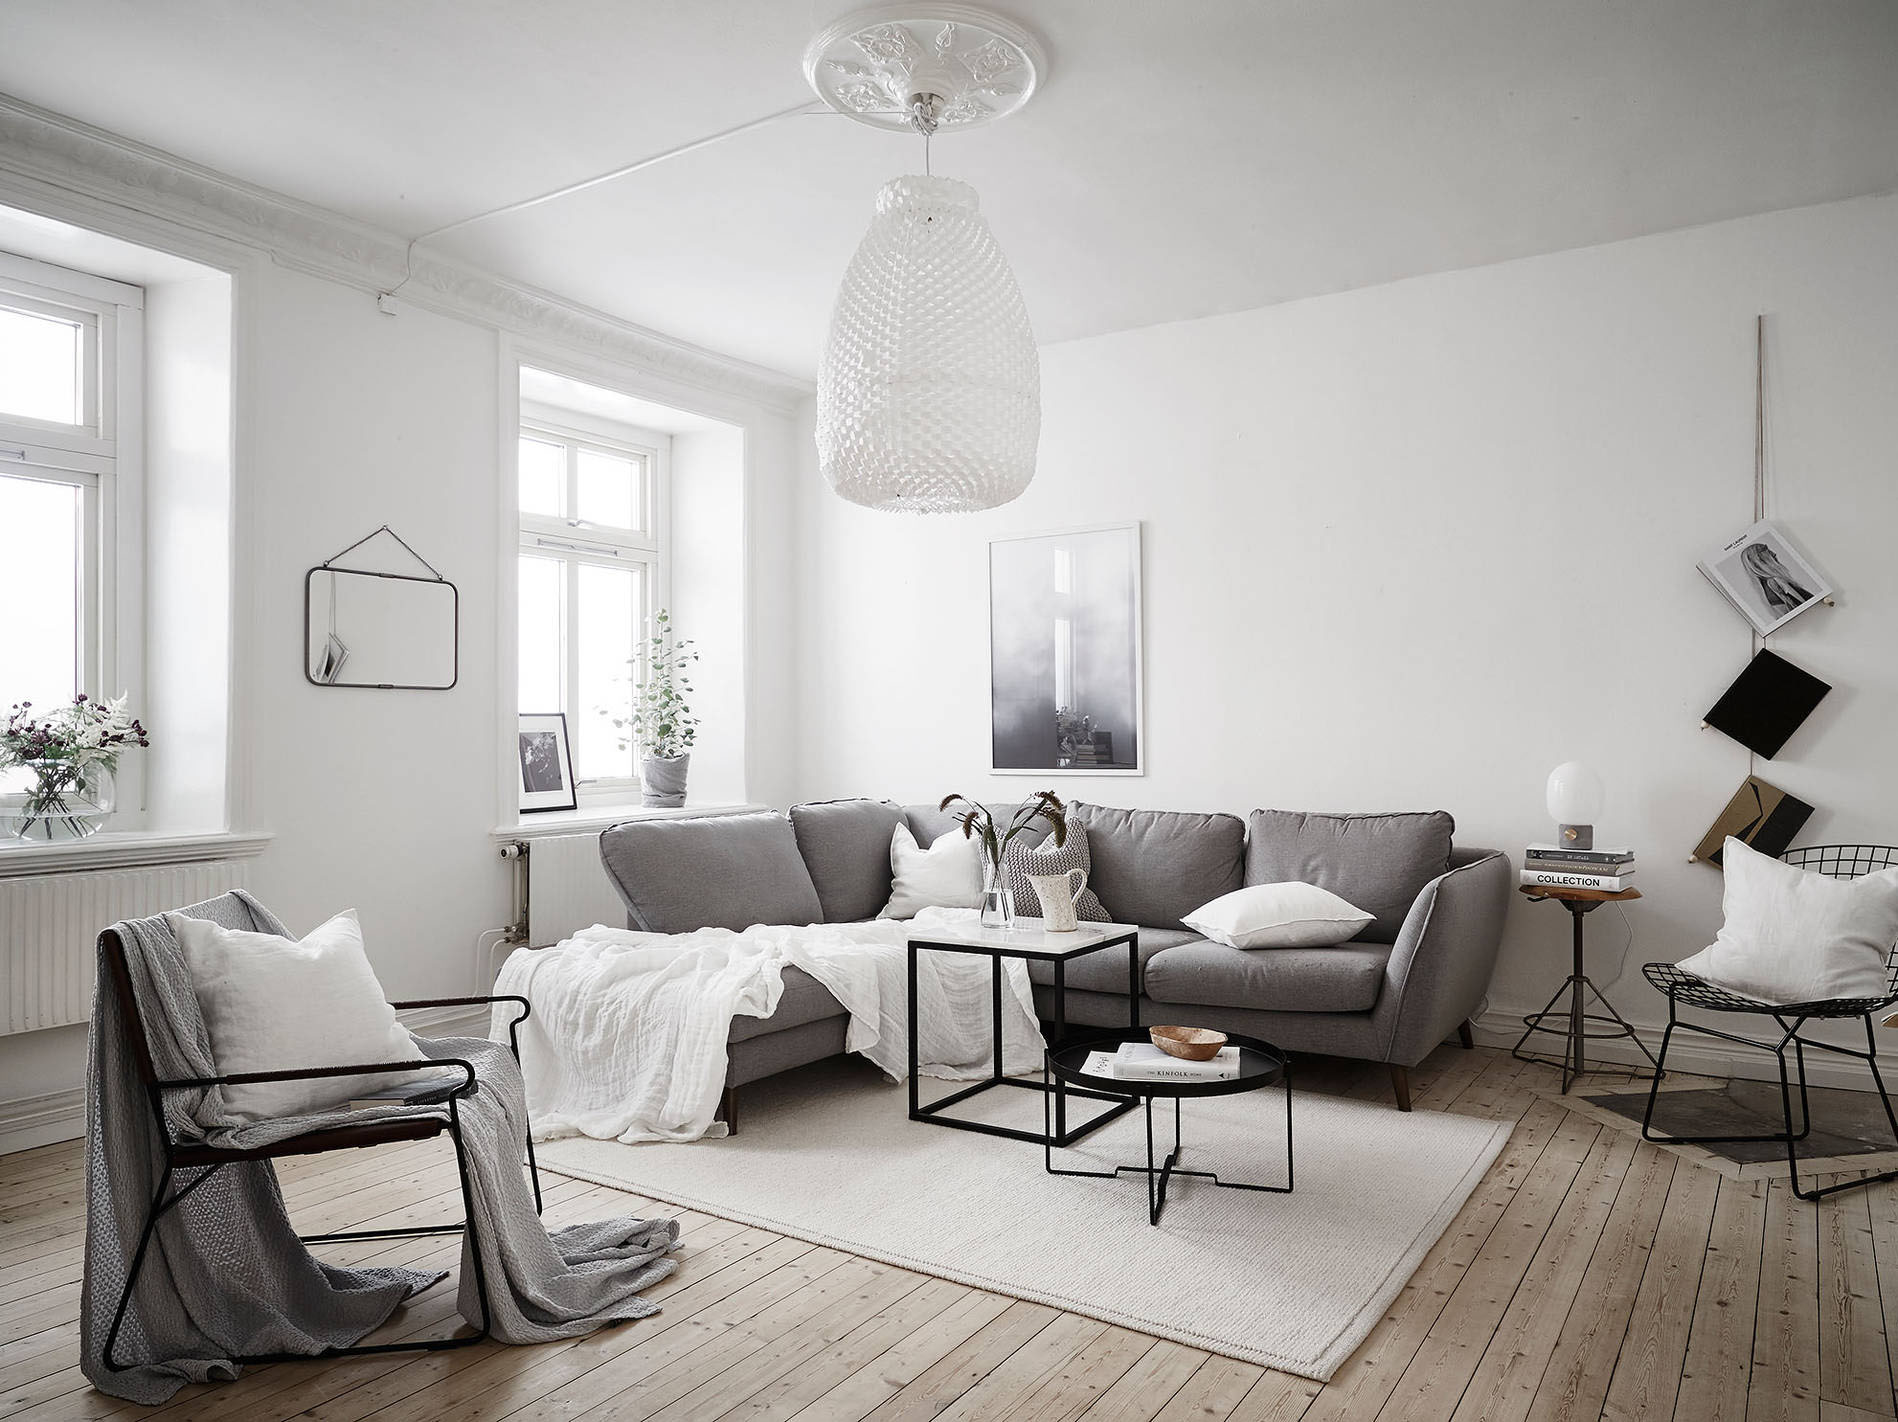 Scandinavian living room with large pendant lamp - Top 10 tips for adding Scandinavian style to your home | Happy Grey Lucky